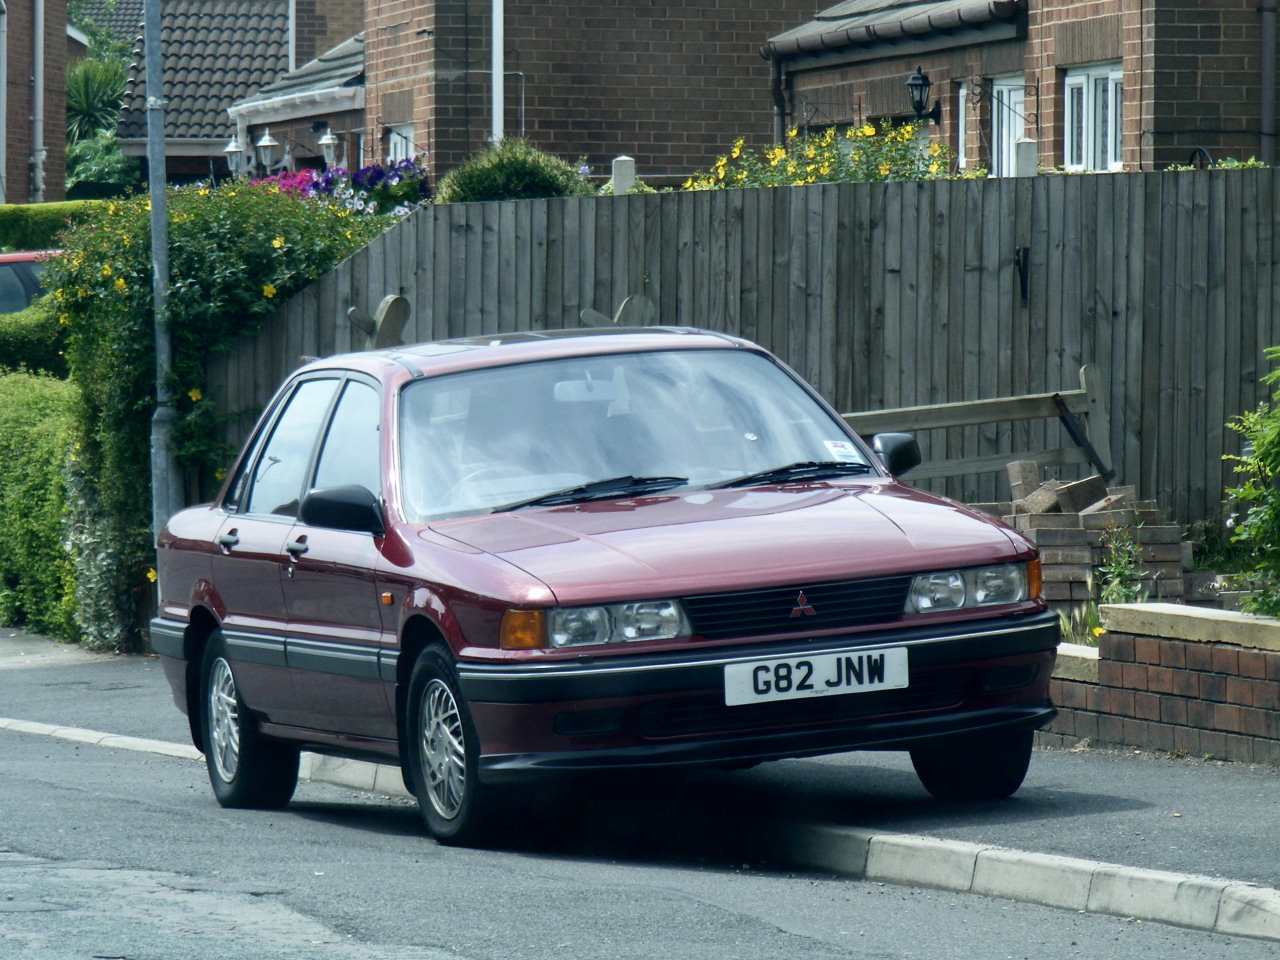 Mitsubishi Galant GLS | Flickr - Photo Sharing!